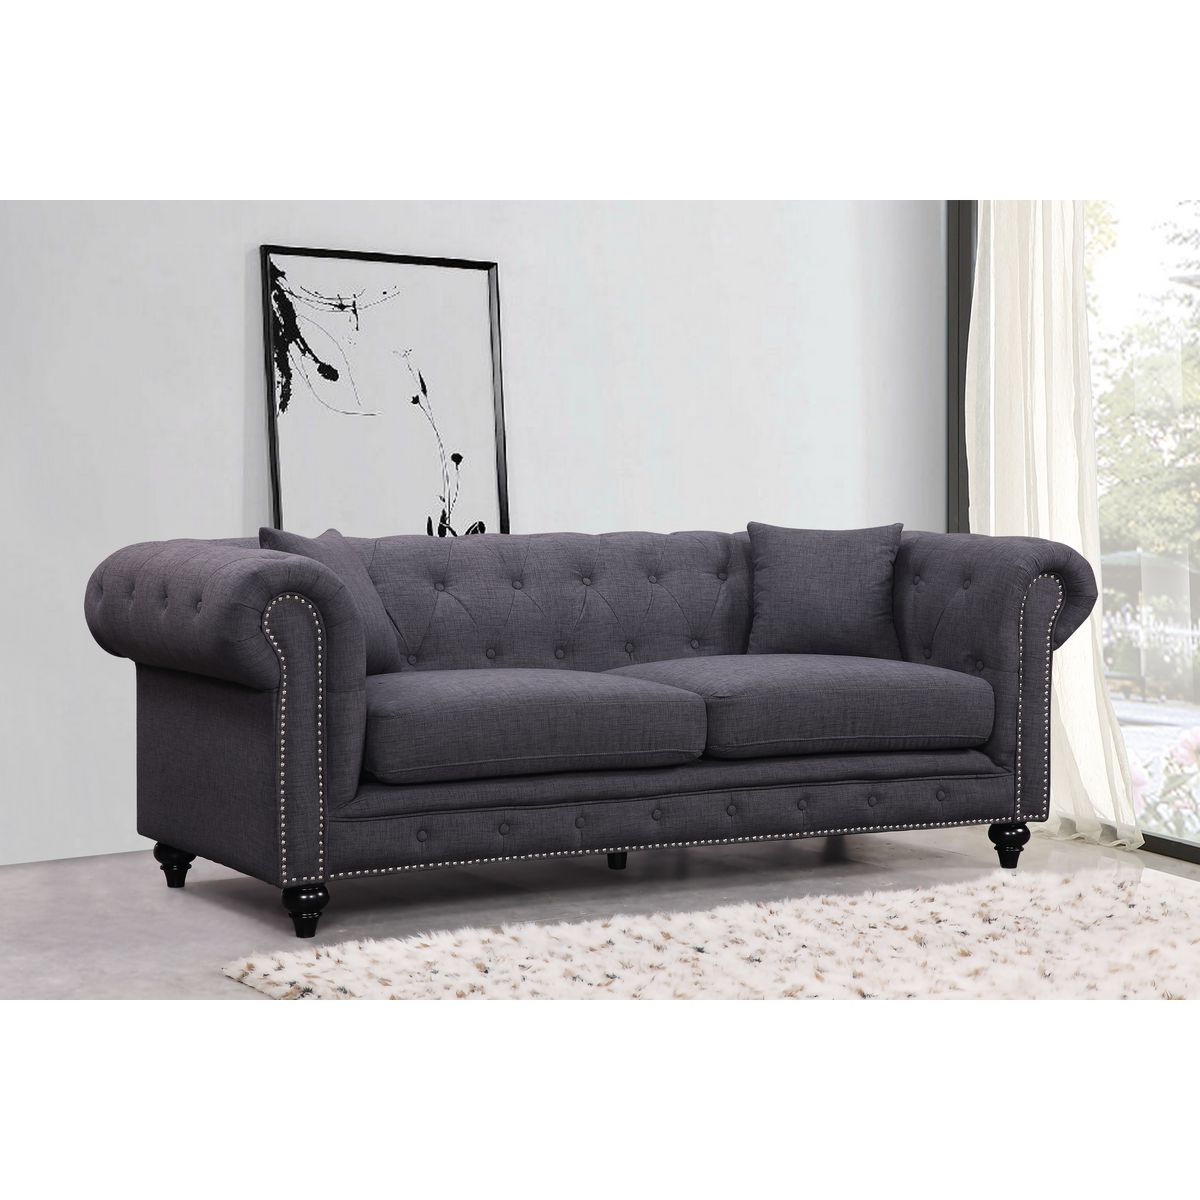 Meridian Furniture 662GRY S Chesterfield Tufted Grey Linen Sofa W/ Silver  Nailhead Detail